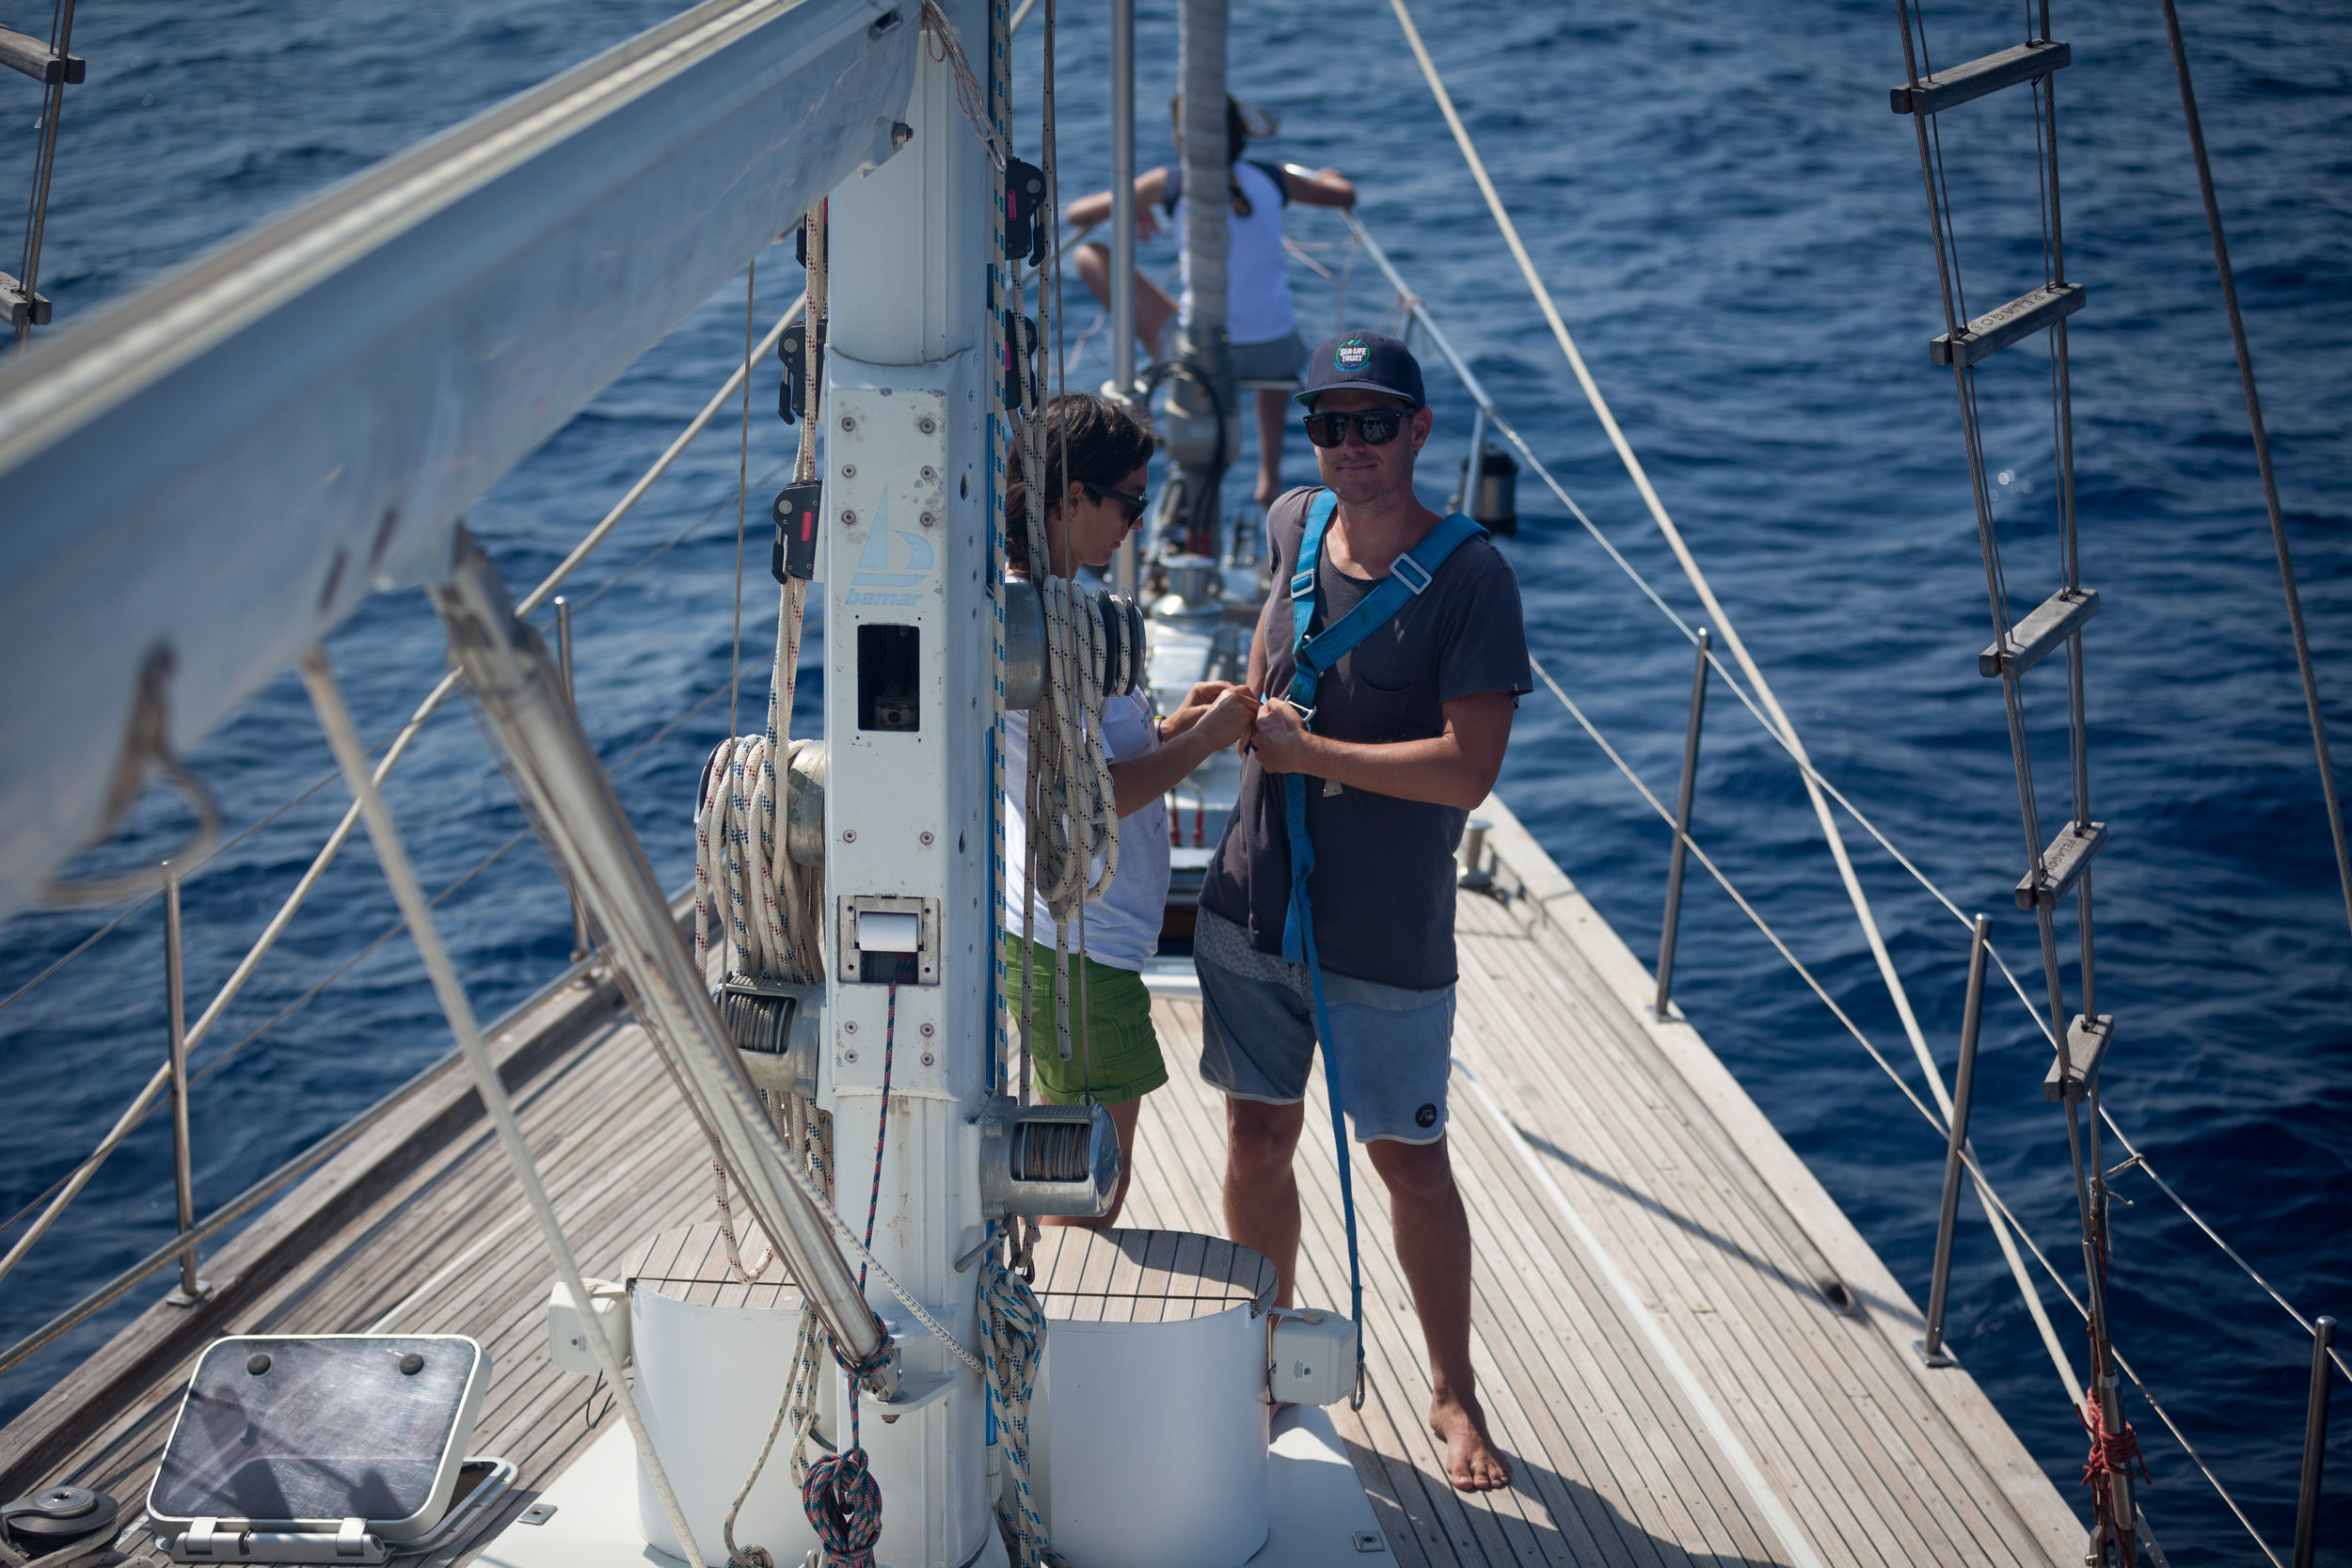 Tethy's Principal Field Investigator, Alessia Scuderi, straps up Co-Director, James Sherwood, so he can climb up the mast and look out for fin whales.